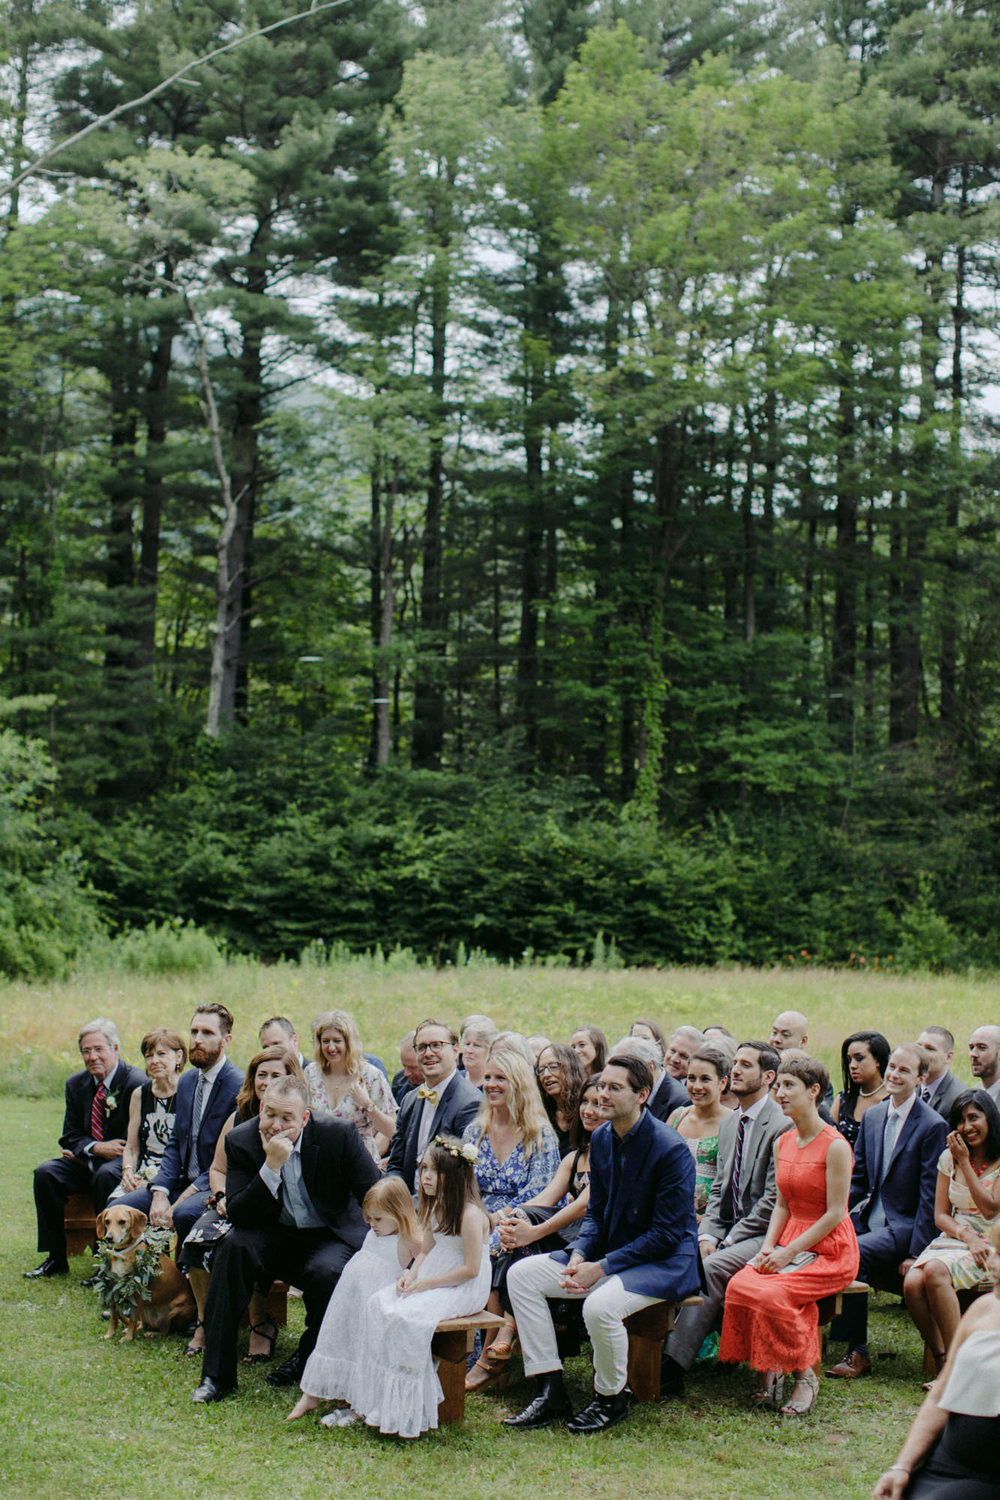 FOXFIREMOUNTAINHOUSE_CATSKILLS_WEDDING_SAMMBLAKE_PJW_0305.jpg